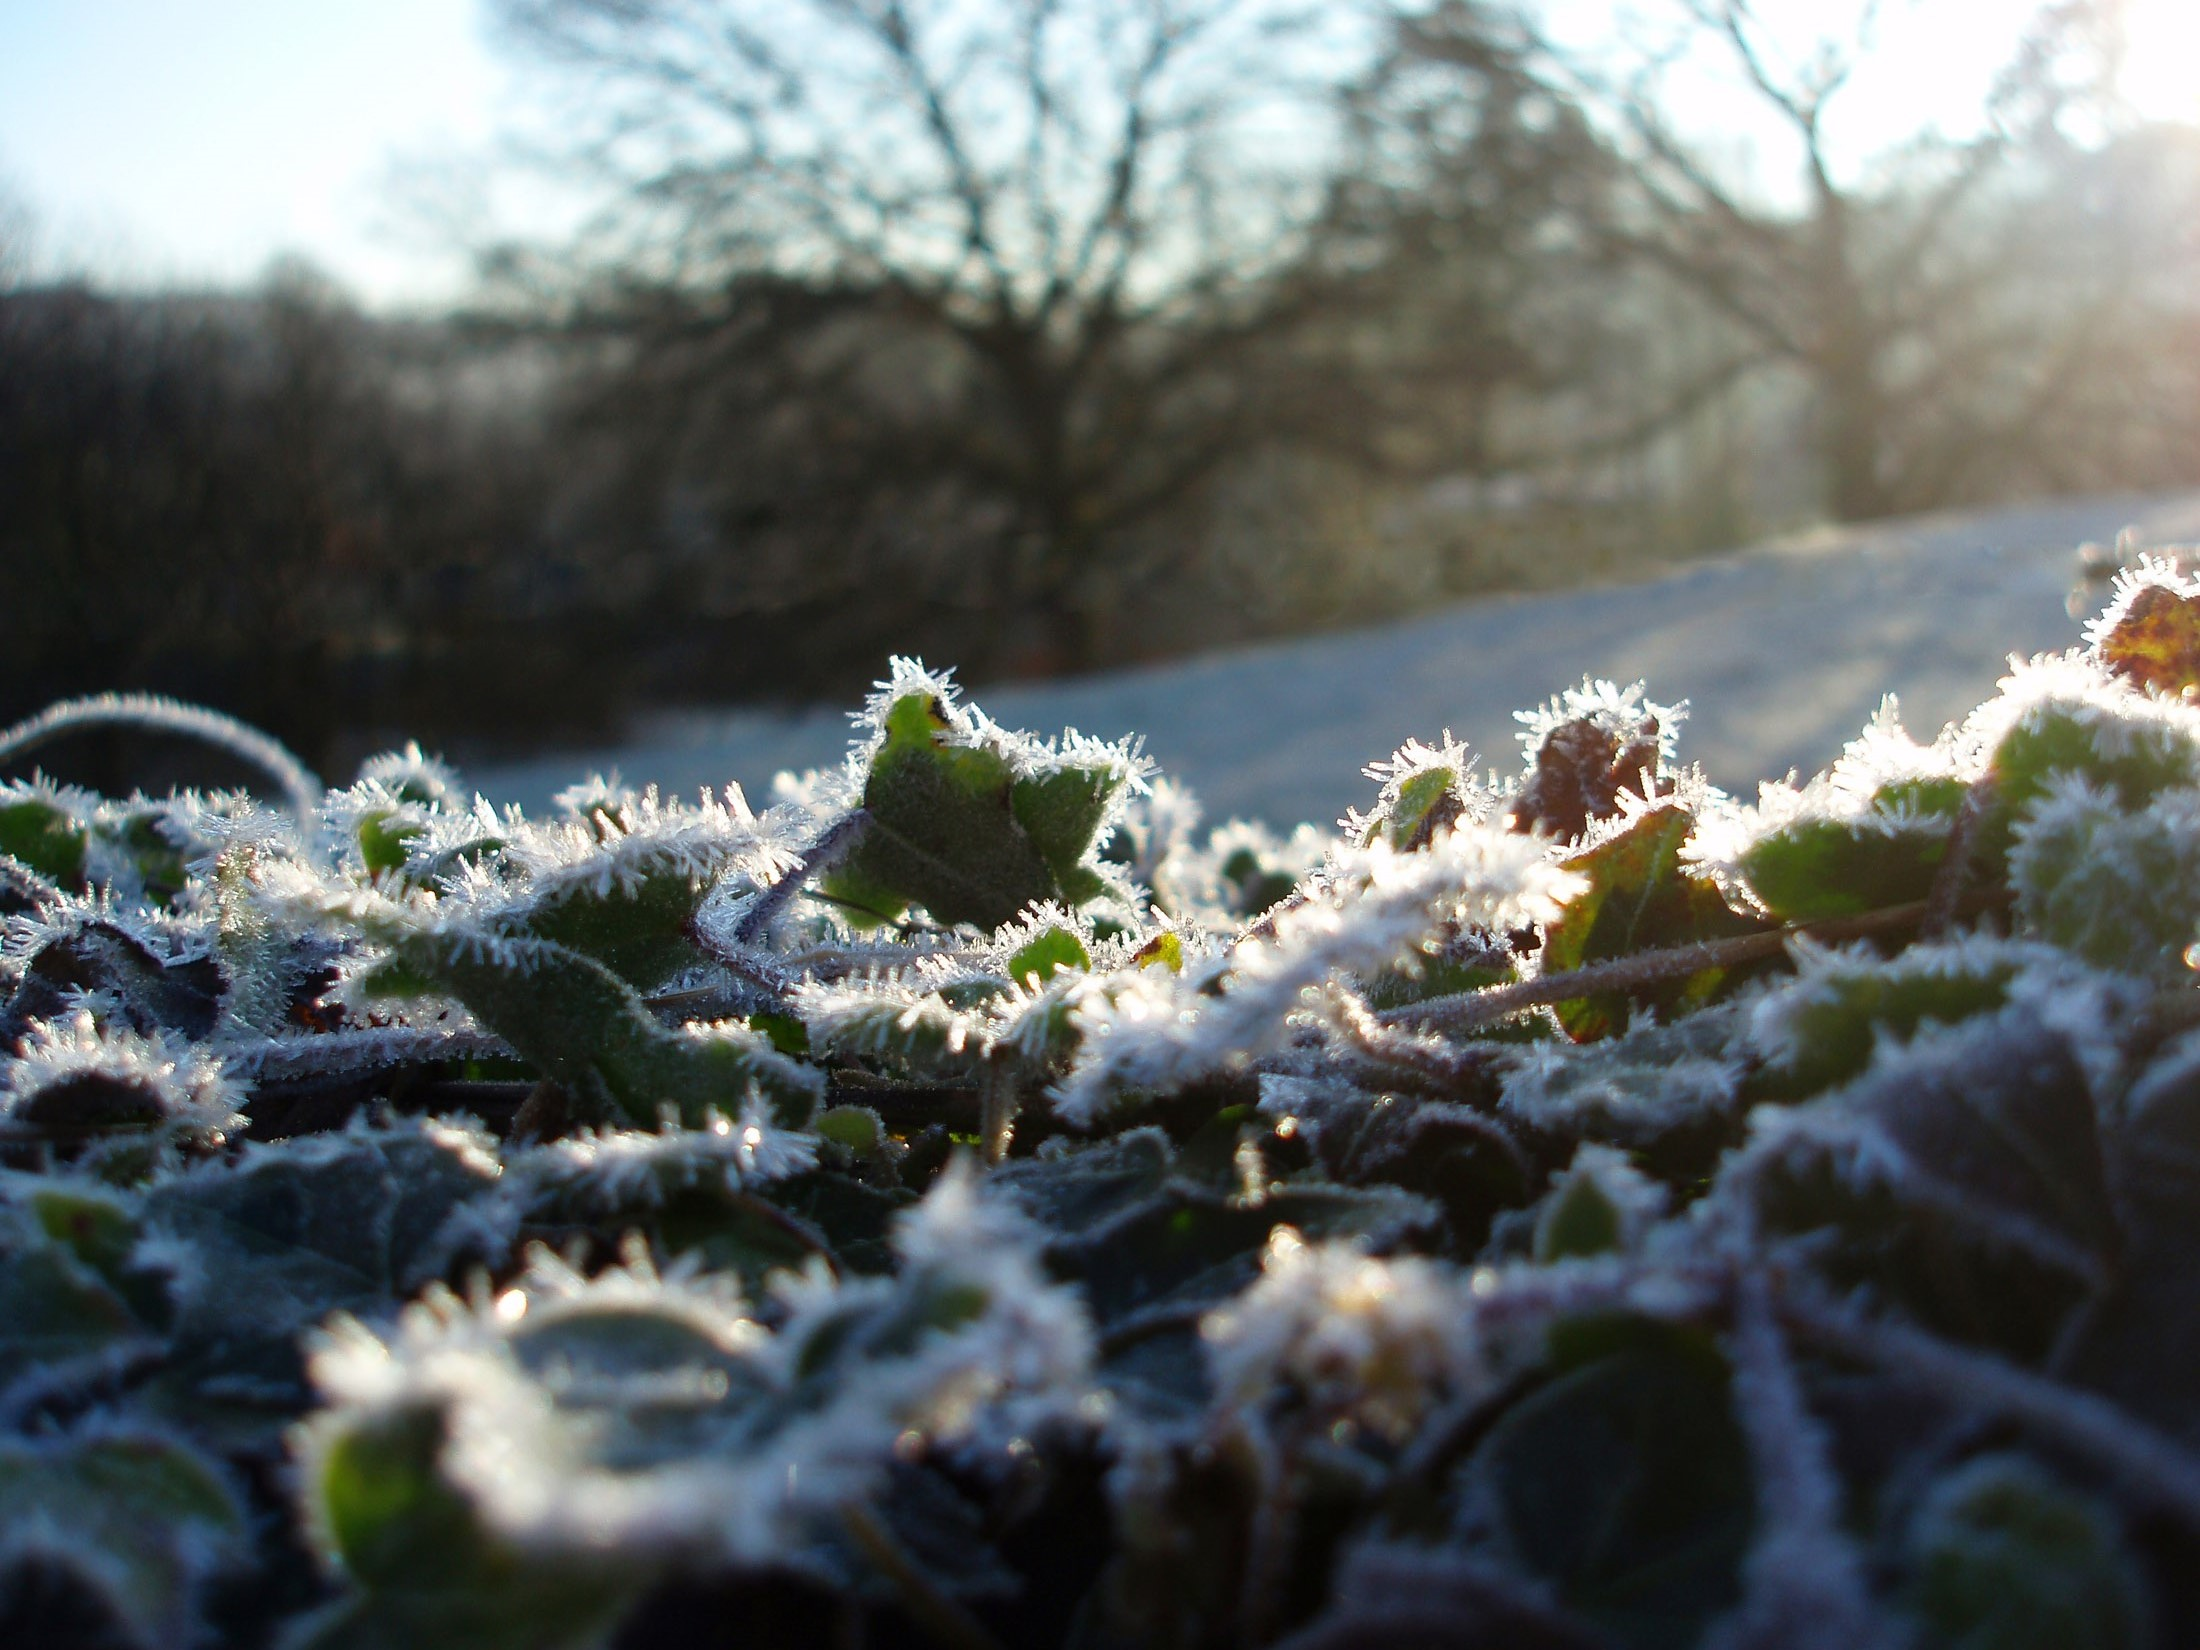 a frosty winter morning with sun glinting on ice crystals in the countryside